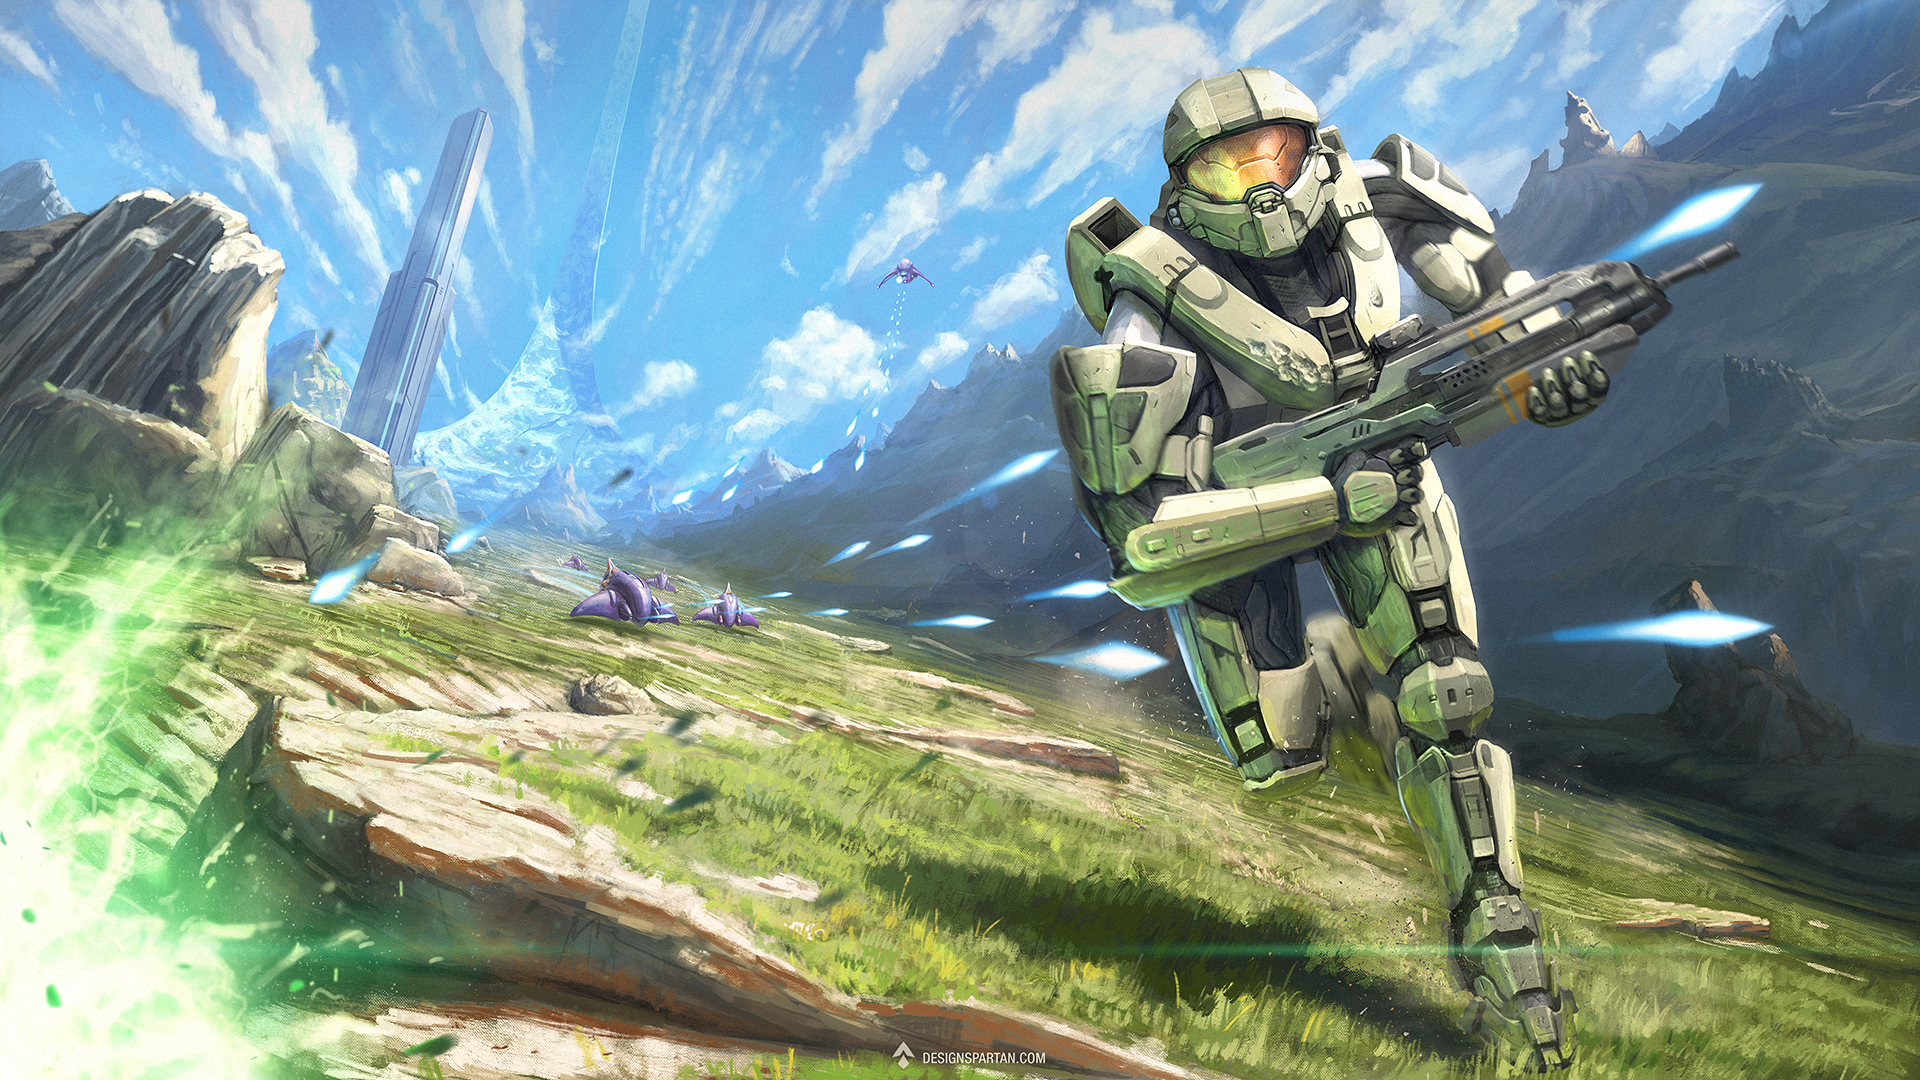 Gaming Painting #1 : Halo, digital painting par Spartan